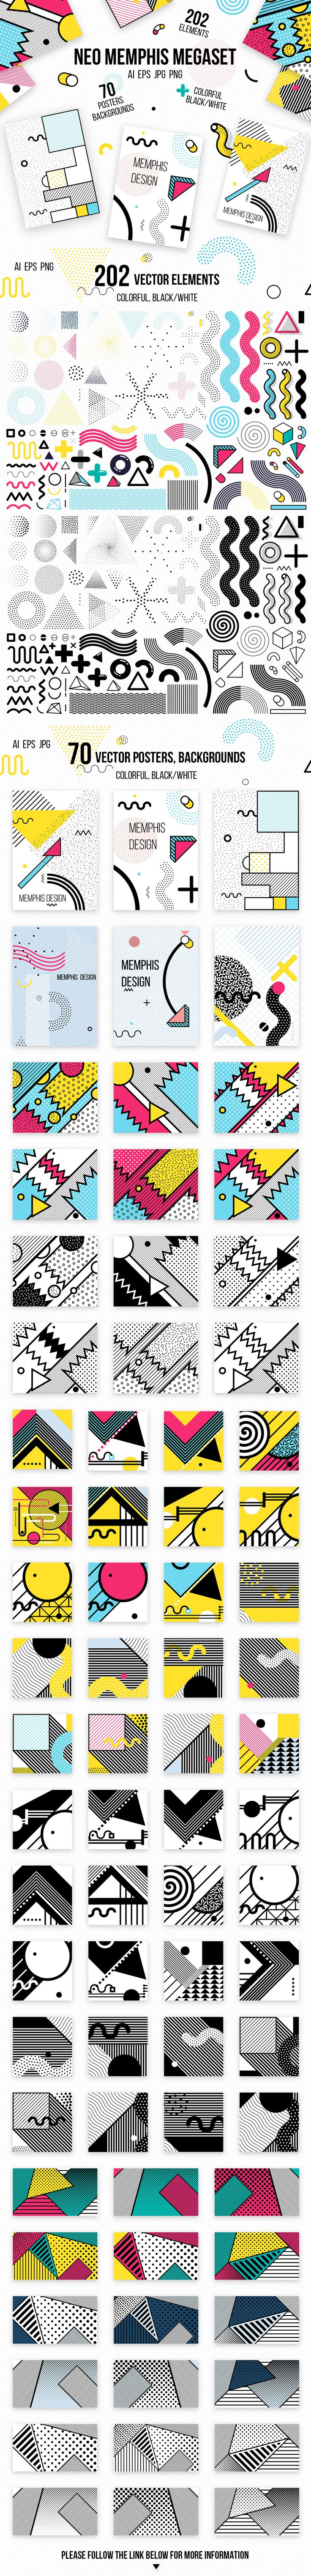 다음 @Behance 프로젝트 확인: \u201c272 patterns, posters, elements. MEMPHIS MEGAset\u201d https://www.behance.net/gallery/46513541/272-patterns-posters-elements-MEMPHIS-MEGAset